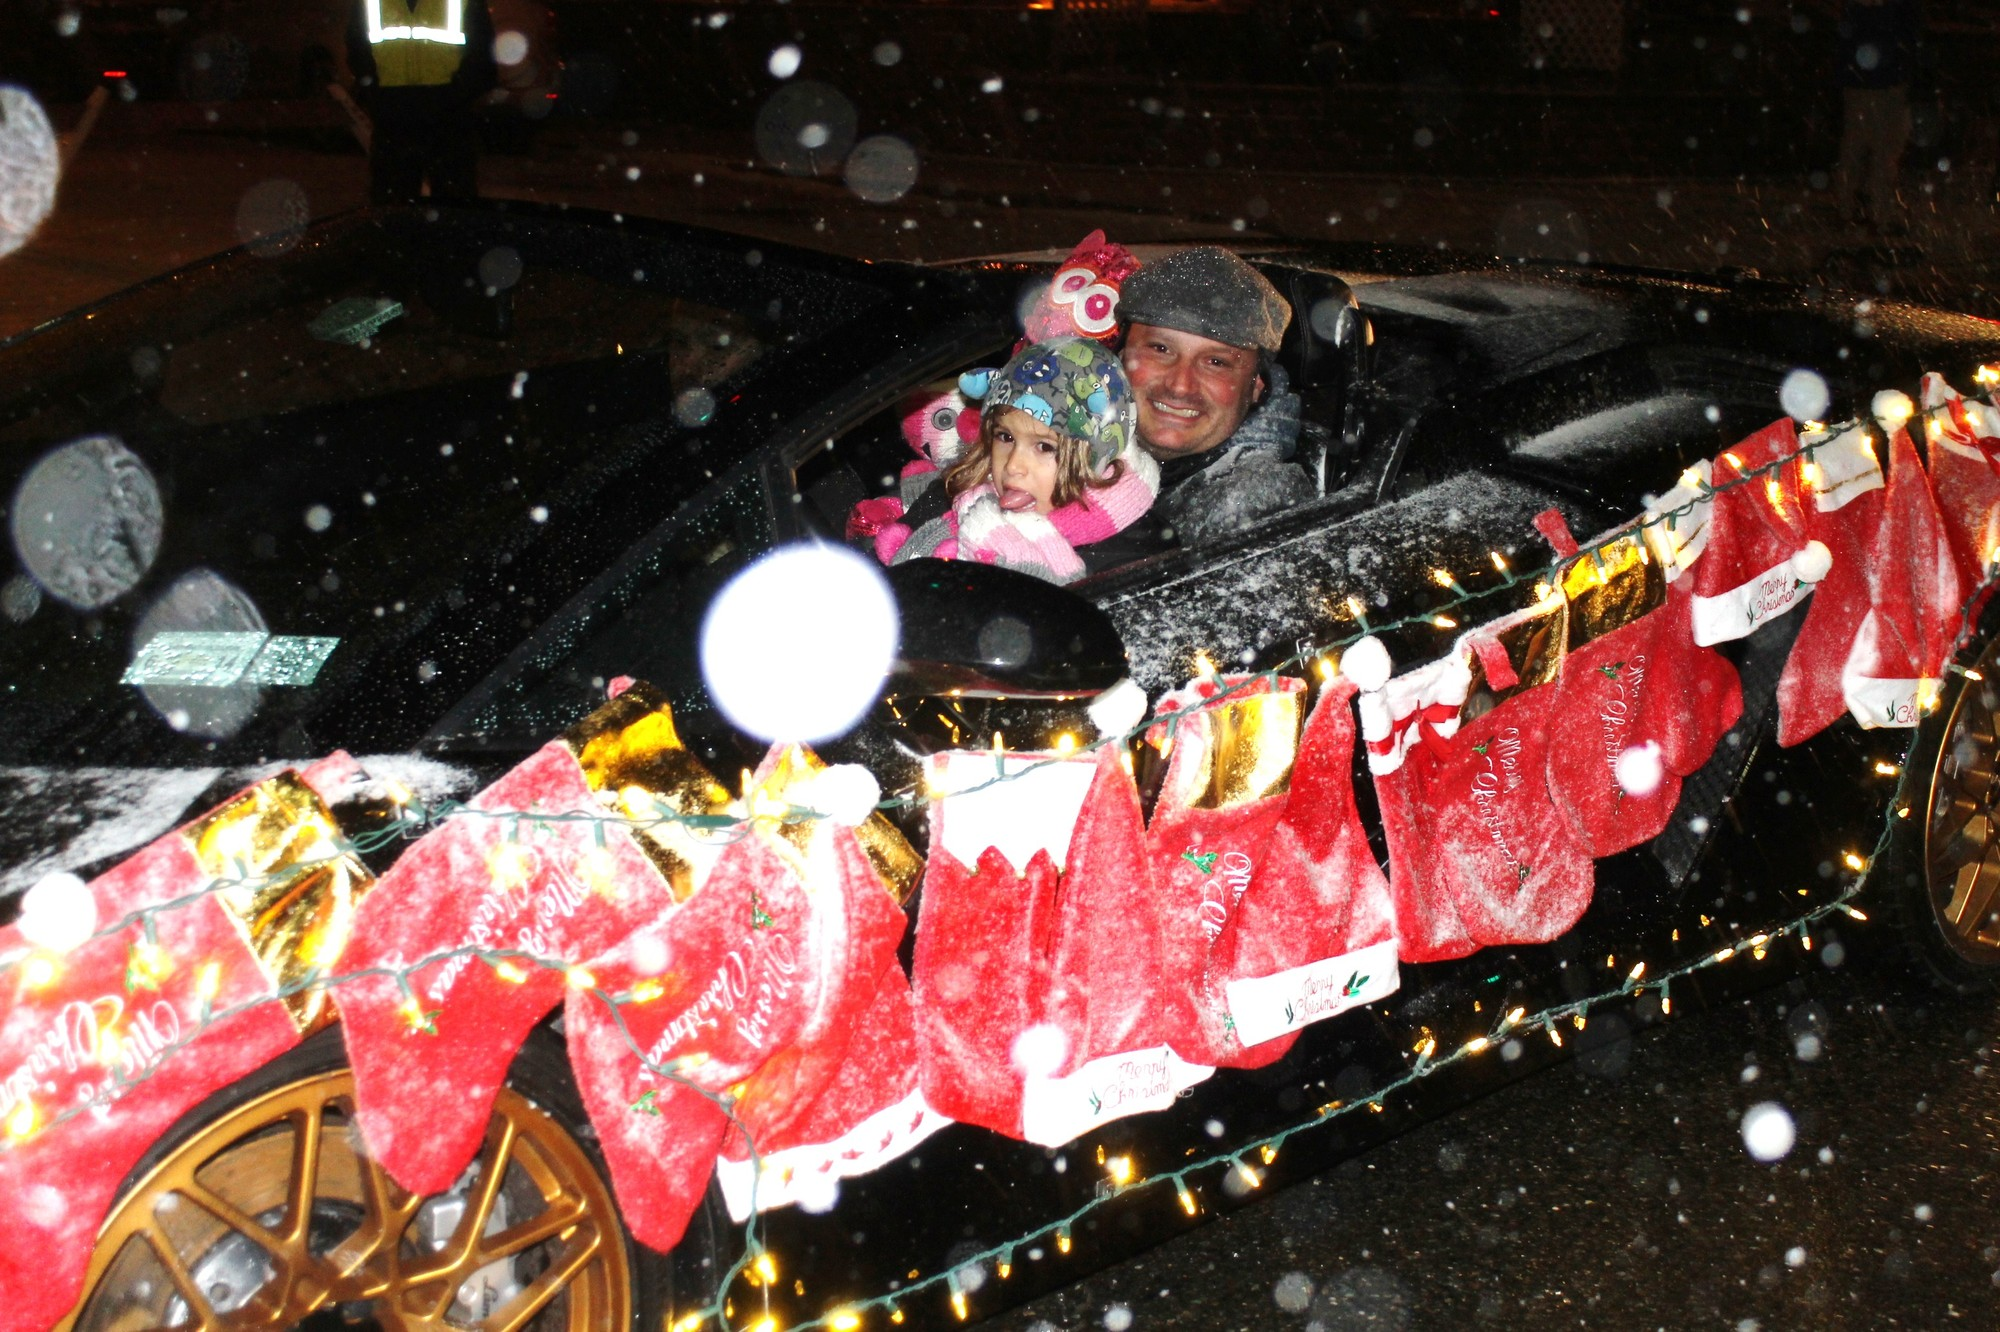 Cars and floats were decorated with lights and holiday decorations.